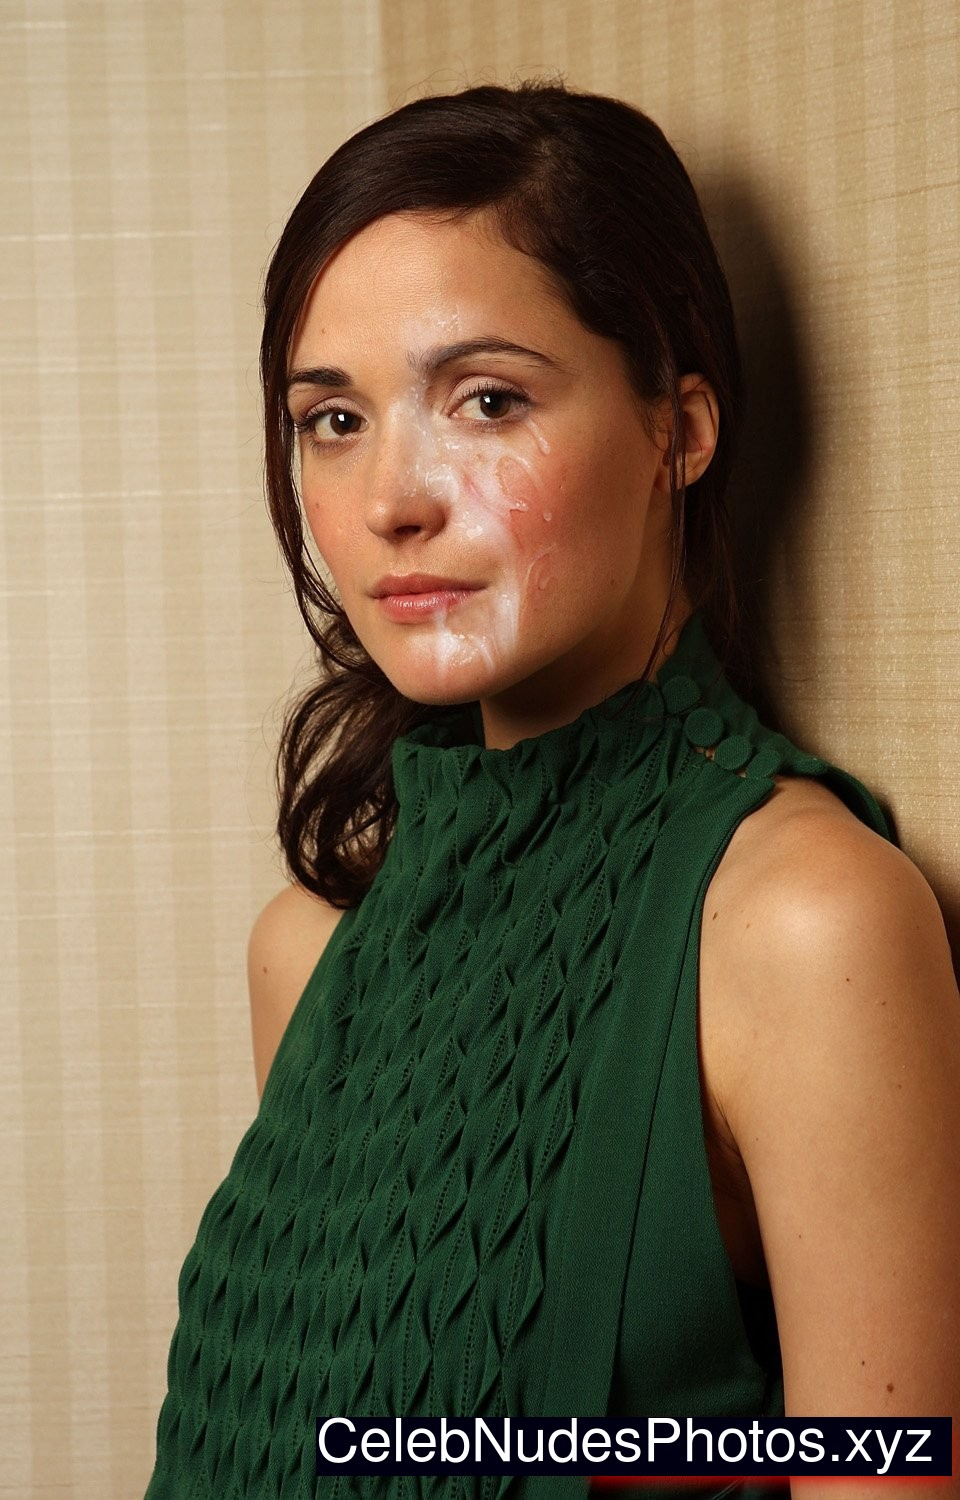 You are rose byrne nude fuck both??